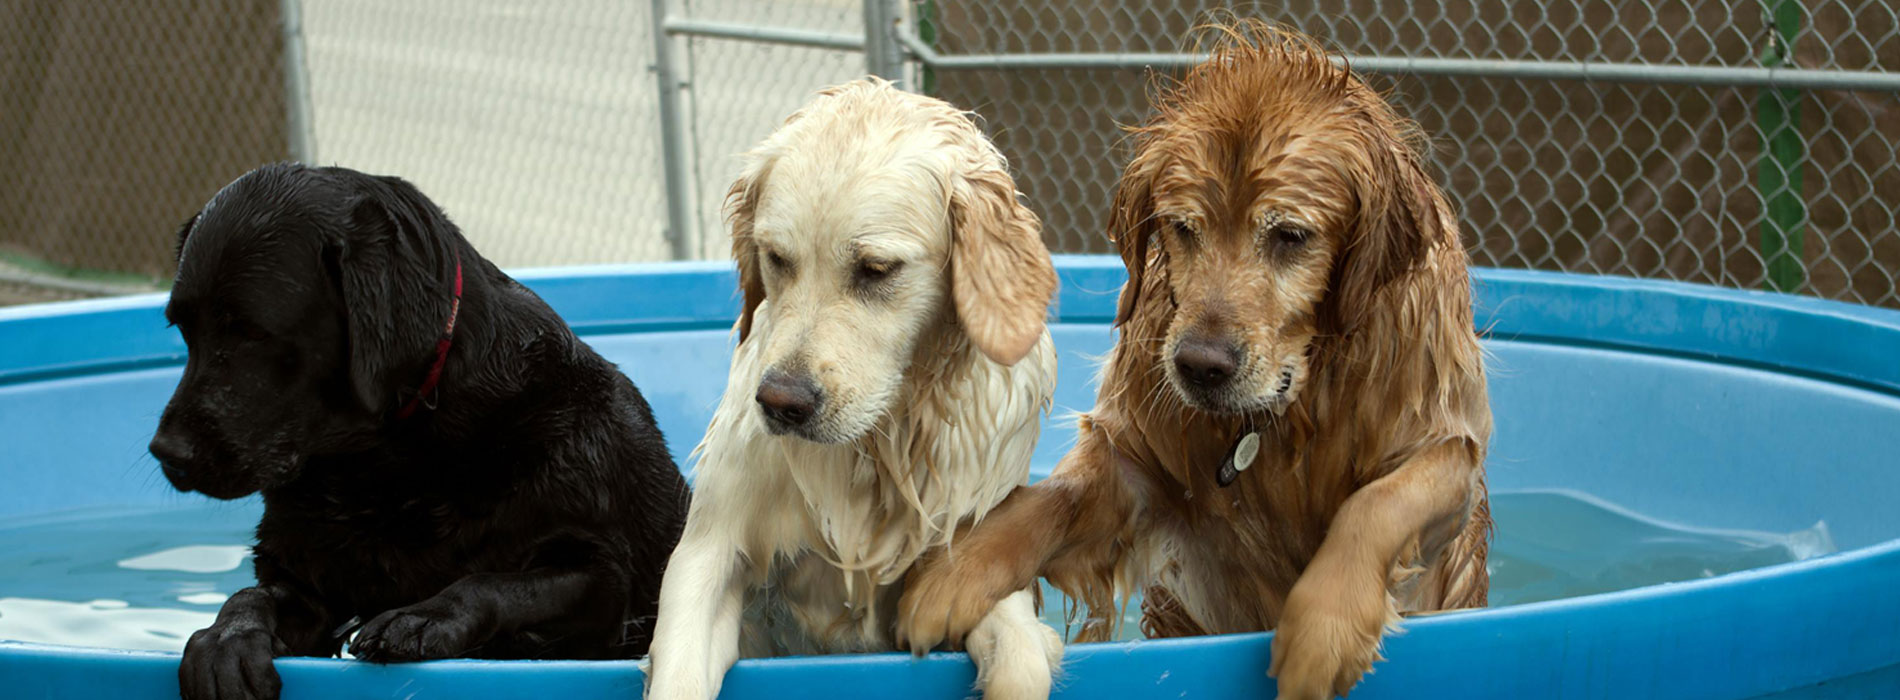 Dogs in a pool - K9 Club Dog Daycare, Edmonton, AB